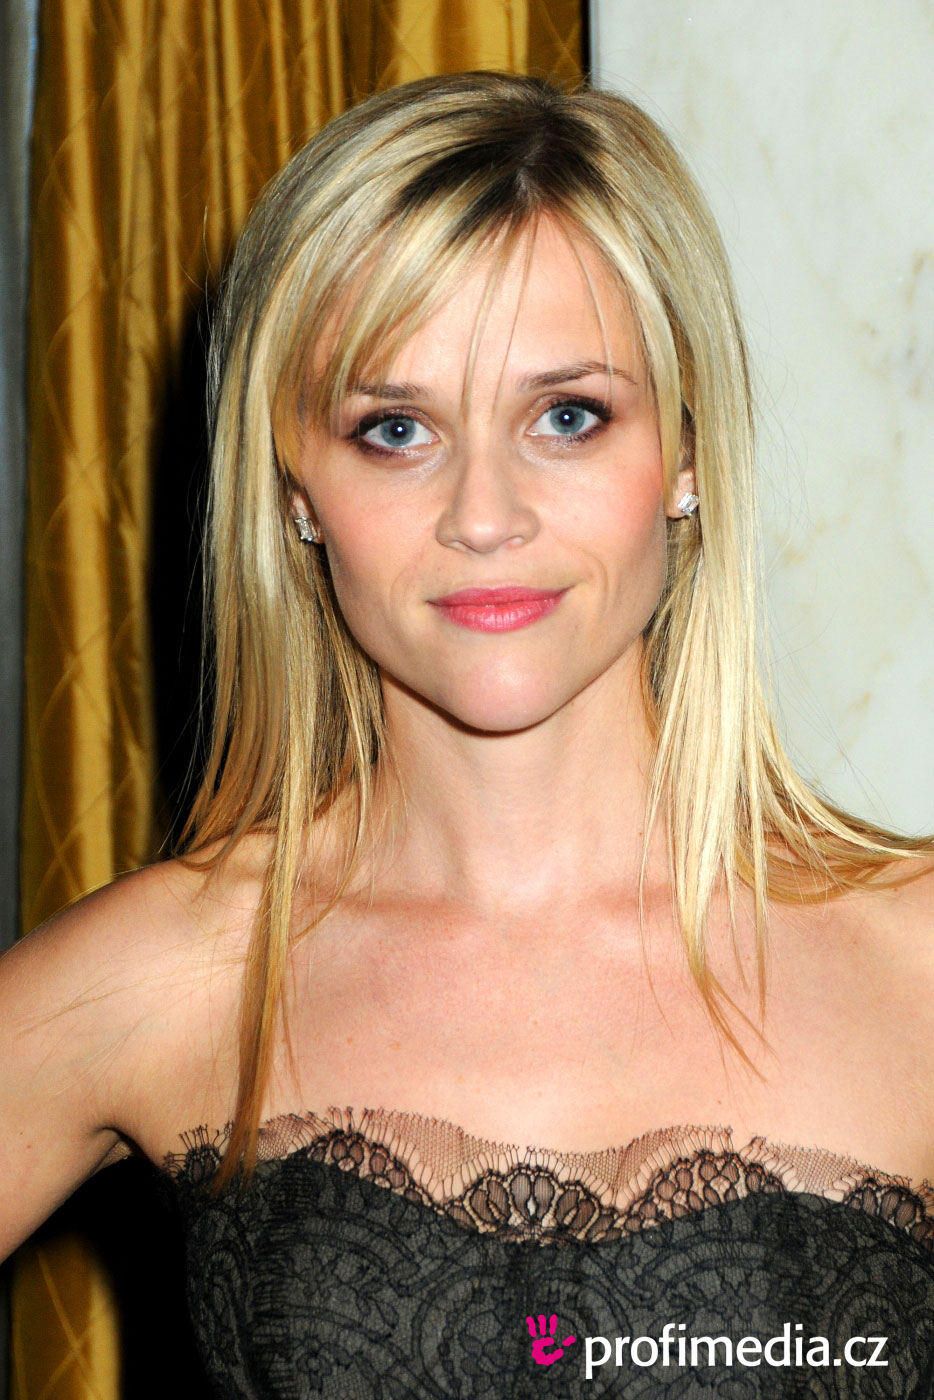 Trendystyle Copy Reese Witherspoons Updo Hairstyle